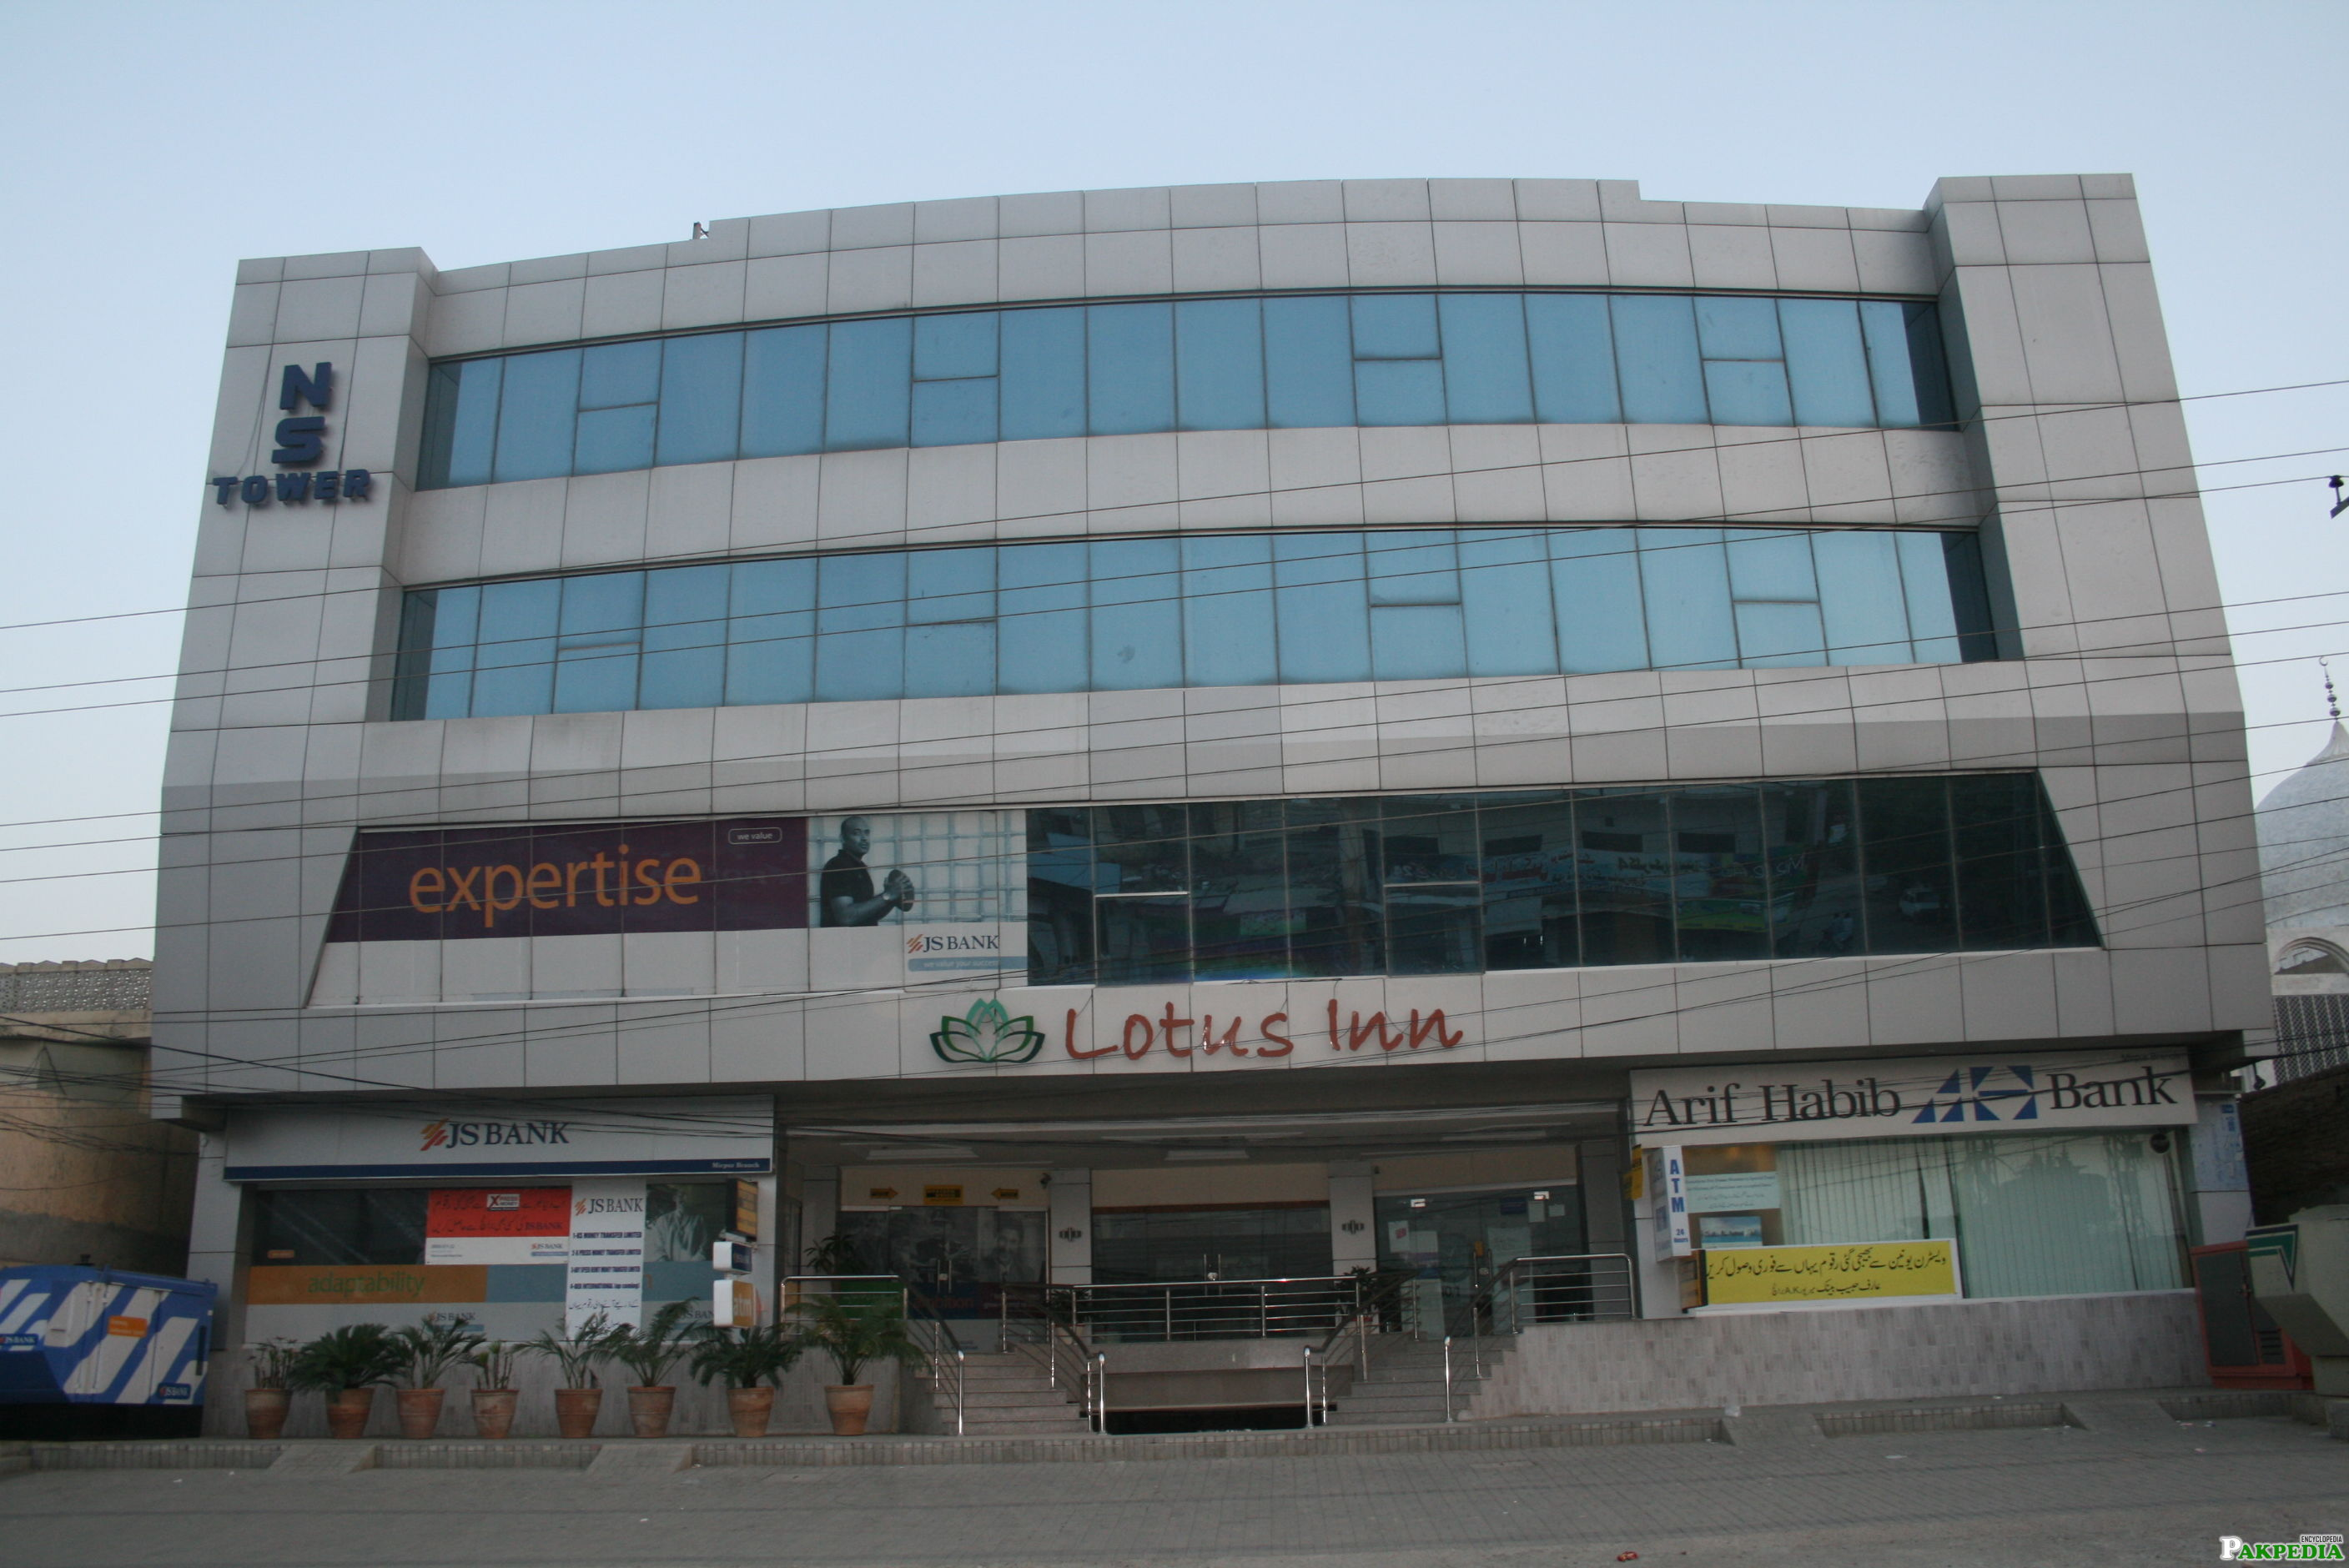 Guest house in Mirpur